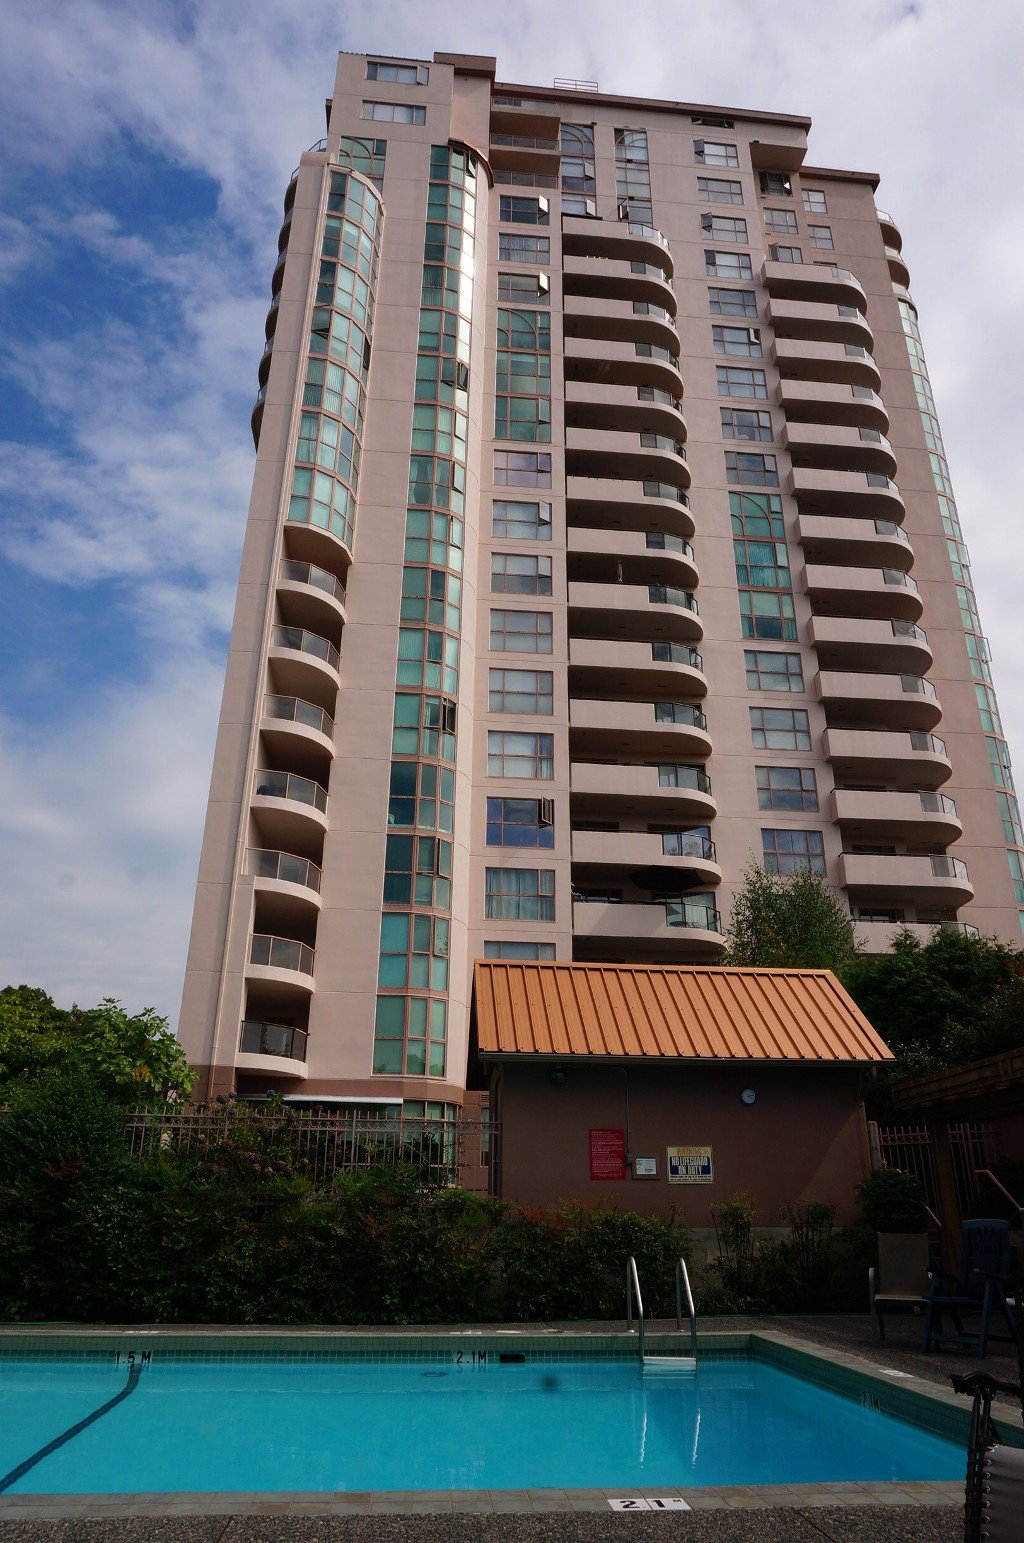 Main Photo: # 1901 612 FIFTH AVE. in New Westminster: Uptown NW Condo for sale : MLS®# V1081231